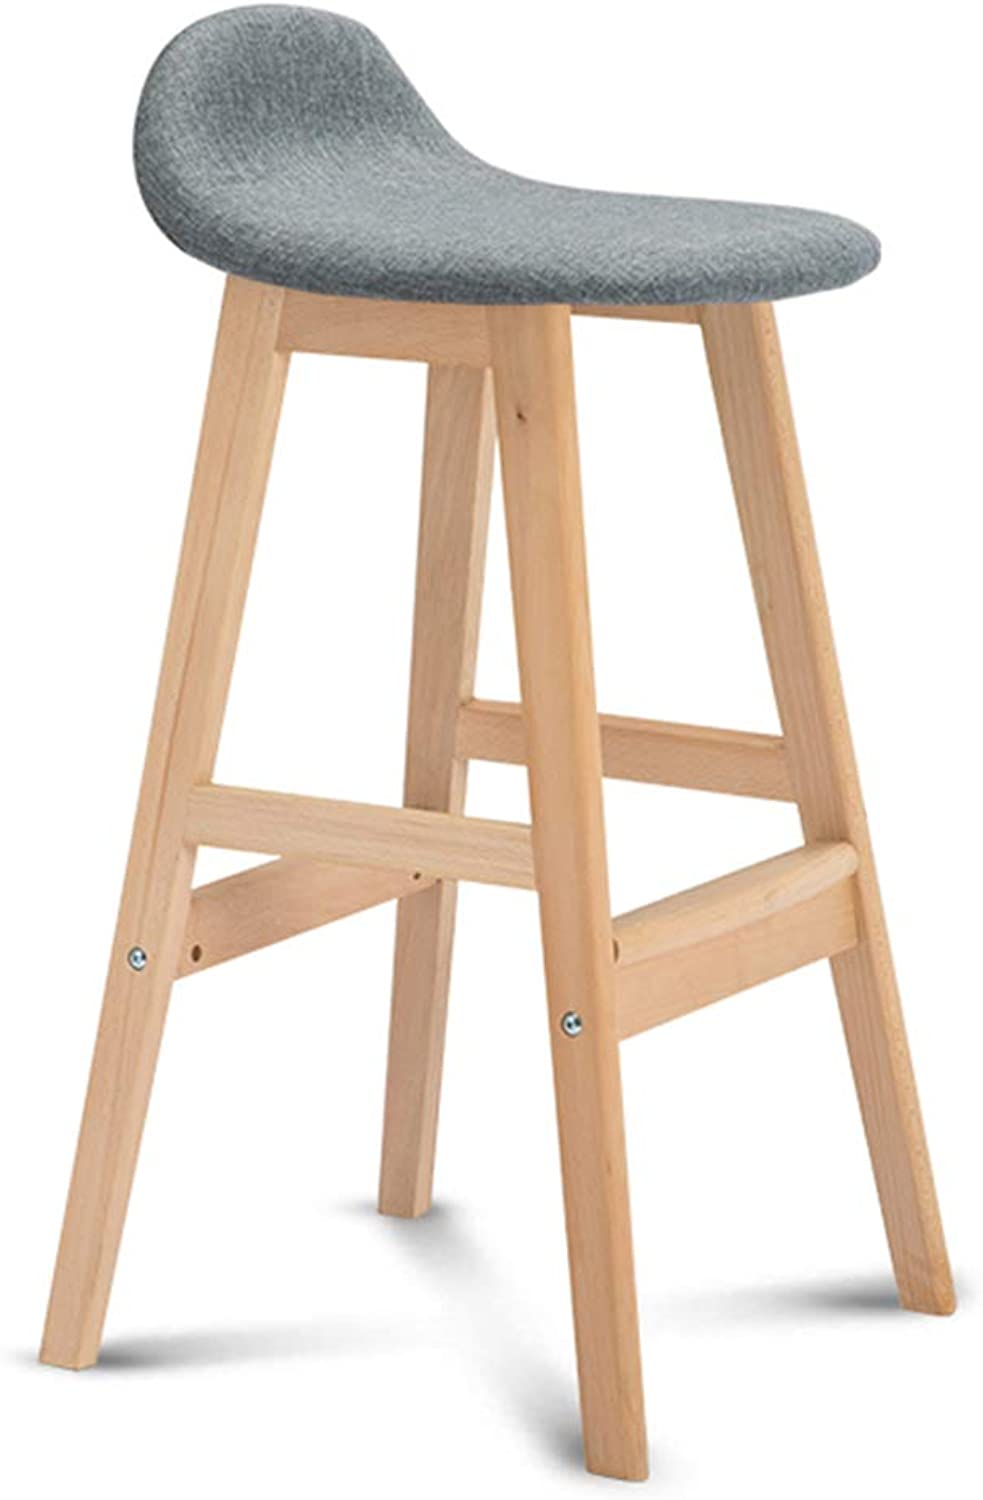 With Backrest Dining Chairs Bar Stools Bar Pub High Stools Bar Chairs Counter Stool Chairs Set High Stool Leisure Simple Nordic for Cafe